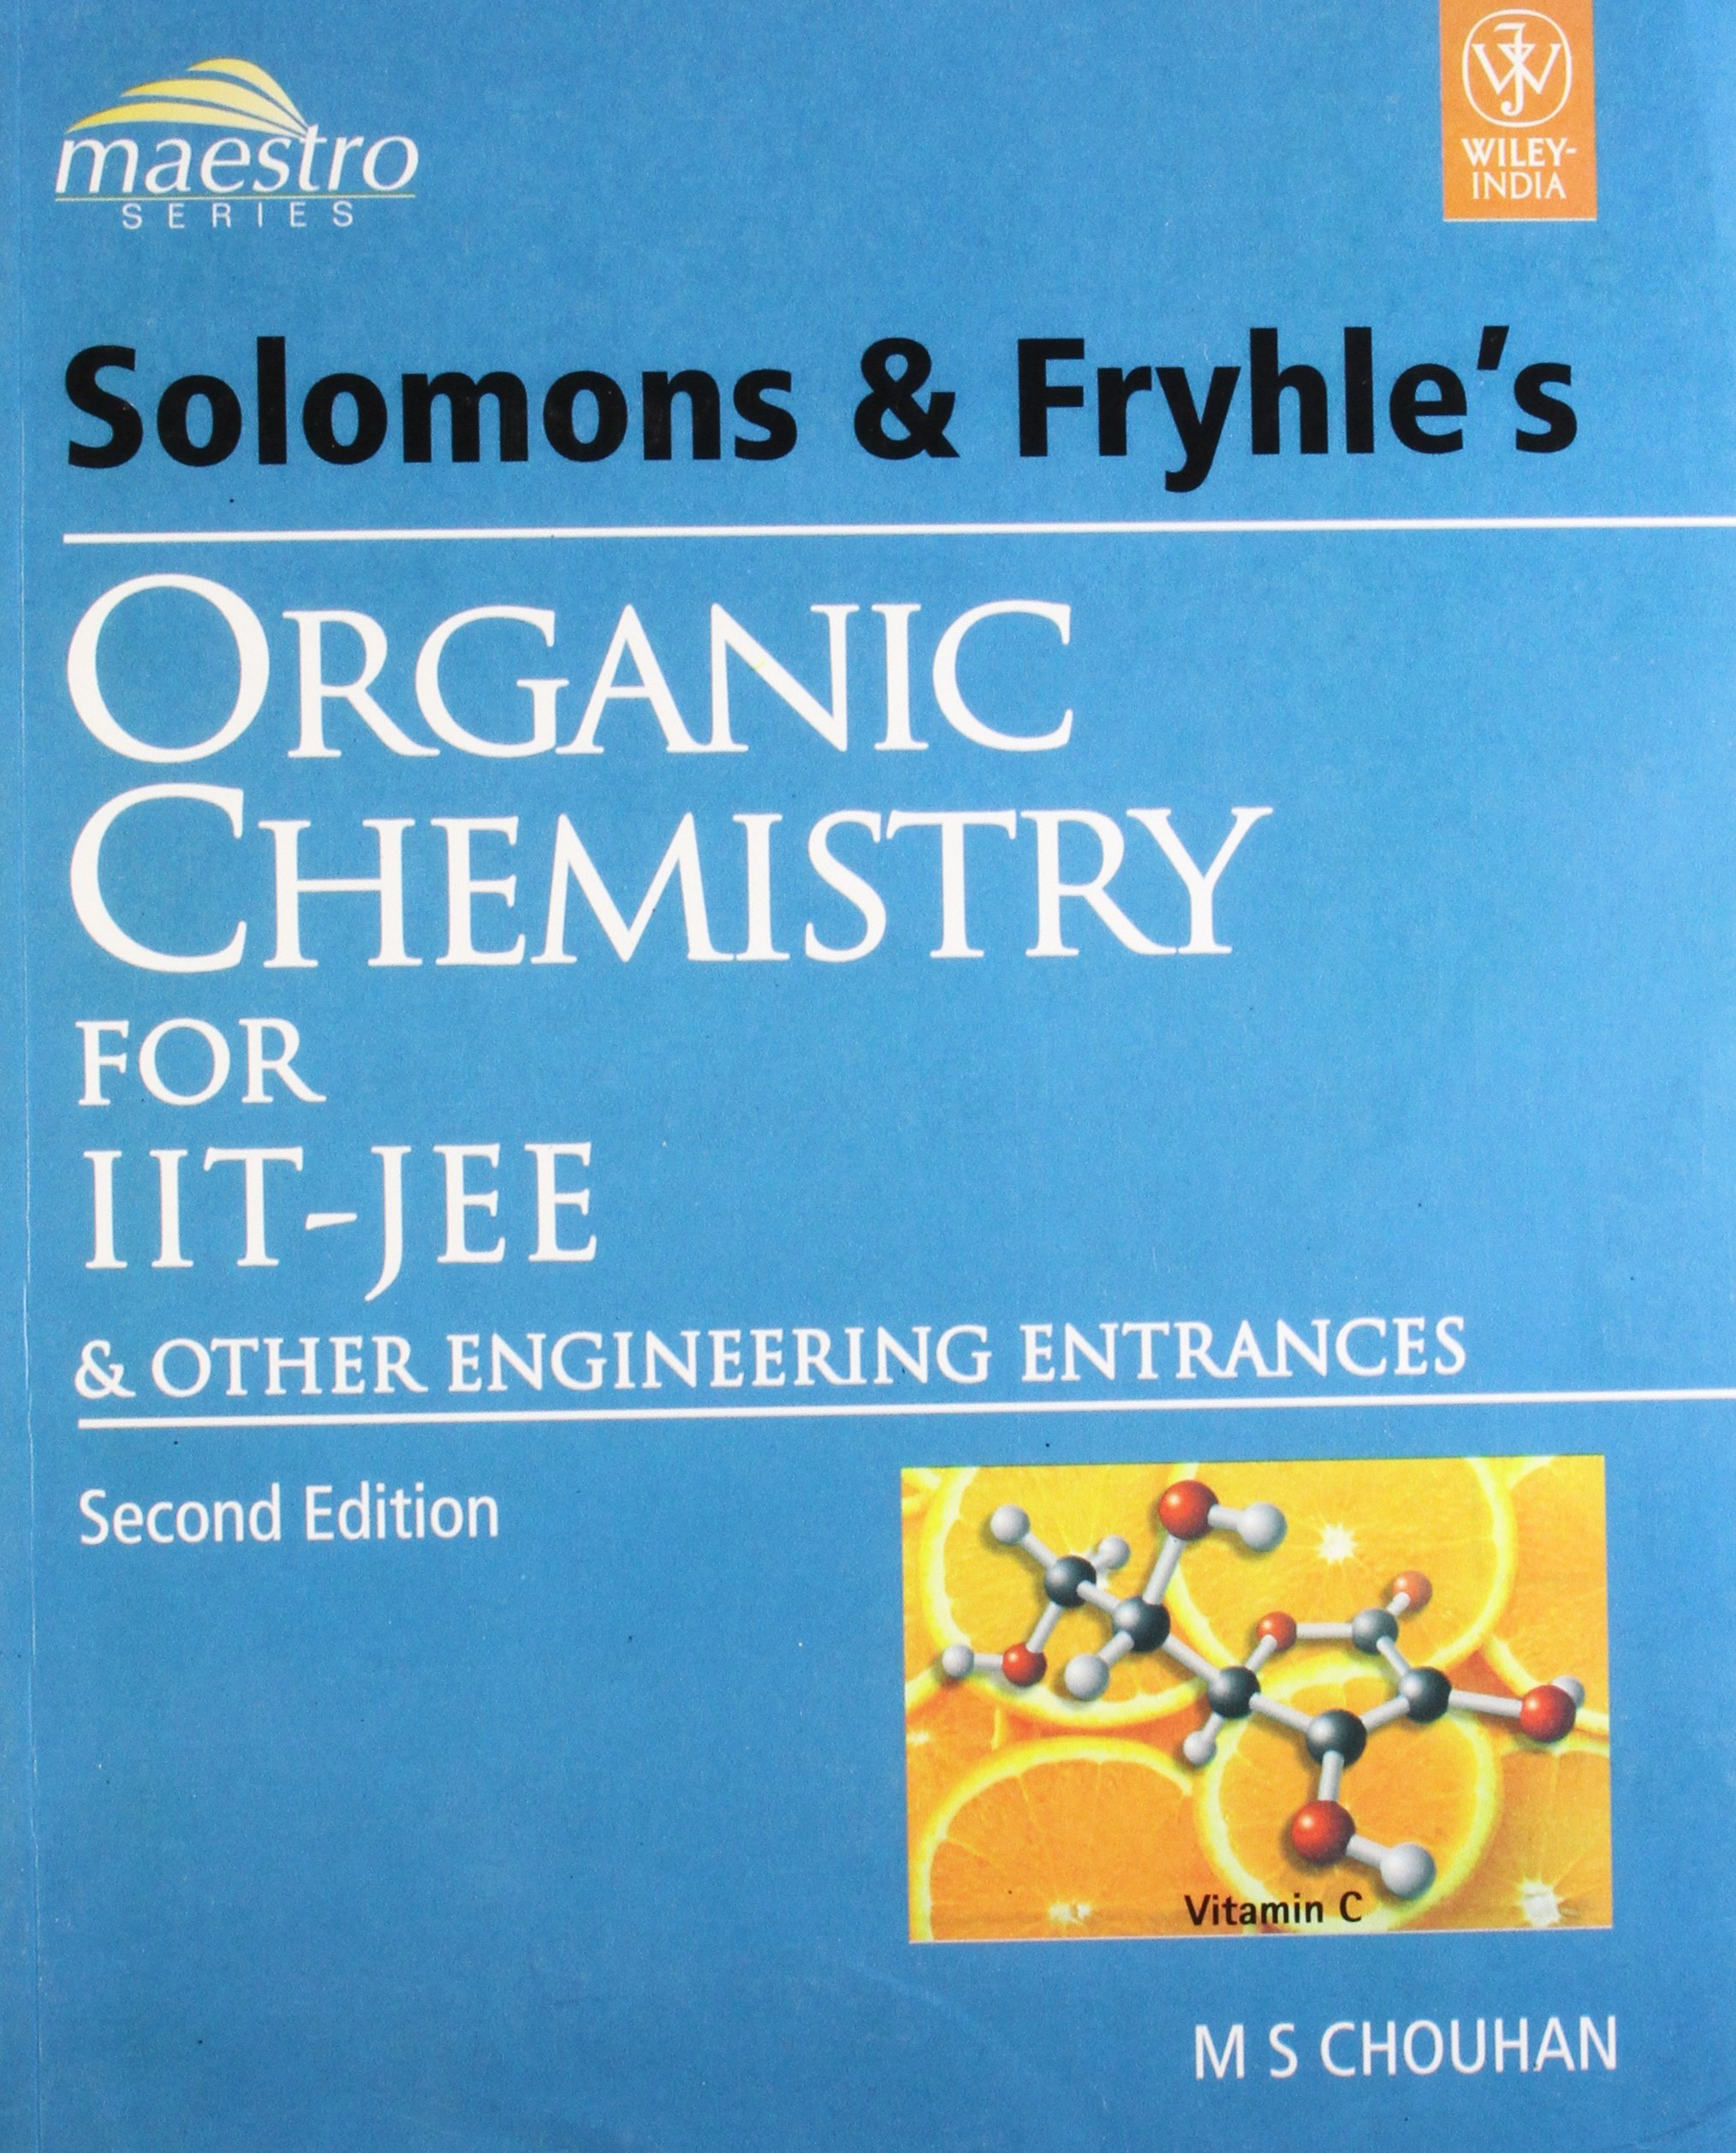 Solomons and Fryhle's Organic Chemistry for IIT-JEE and Other Engineering  Entrances Old Edition: Amazon.in: Solomons, Fryhle, Chouhan: Books